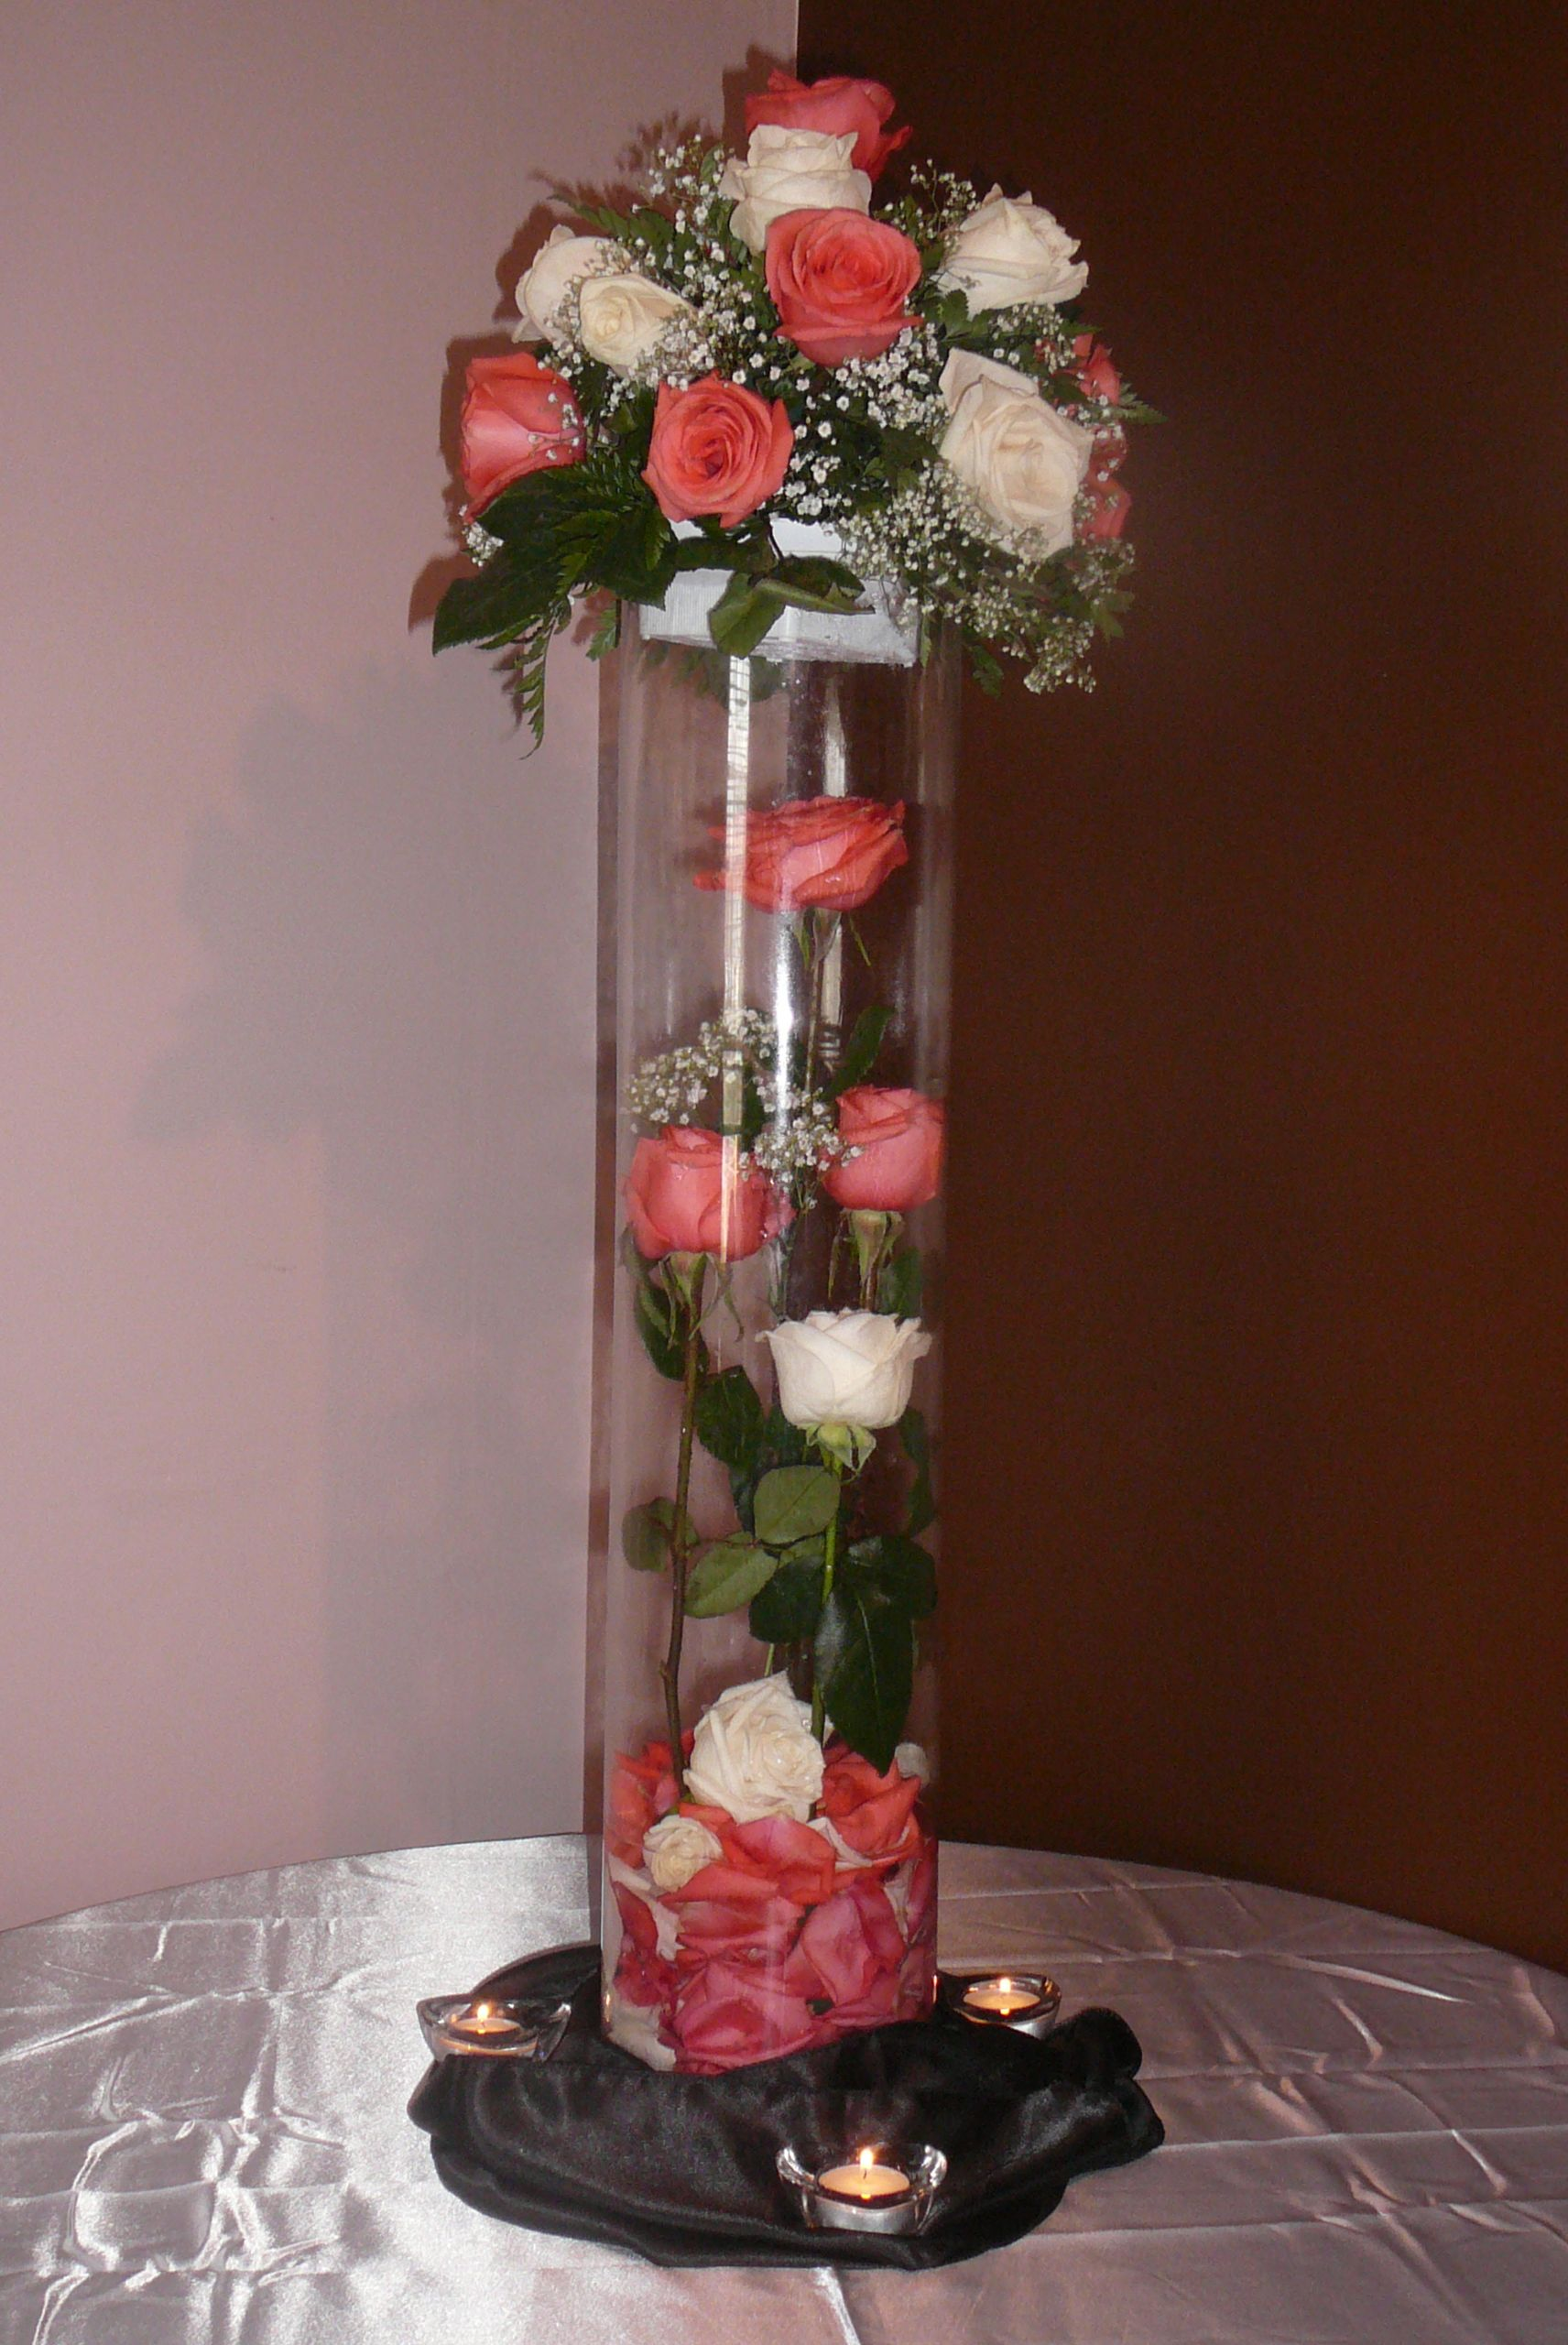 Breathtaking Fresh Floral Centerpieces For Any Occasion Starting At 100 Decoraciones Florales Arreglos Florales Arreglos Florales Sencillos